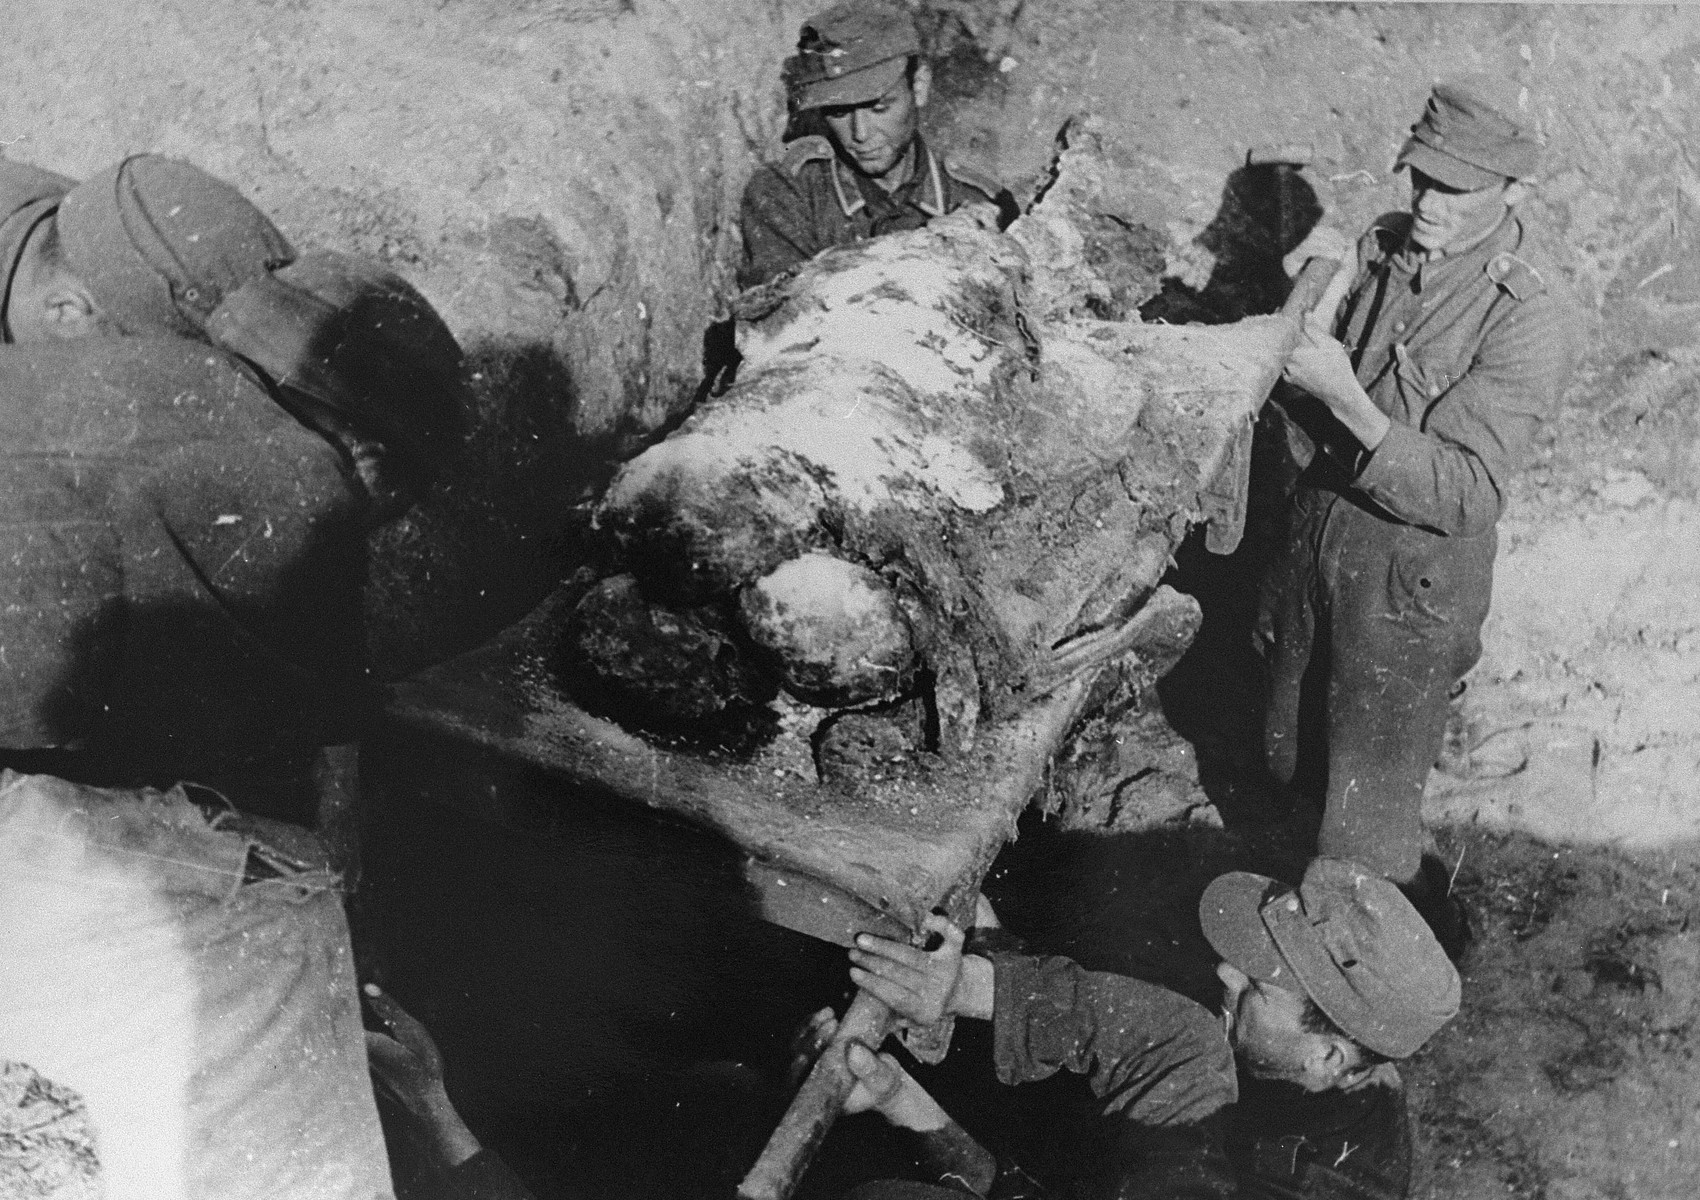 Under the supervision of Soviet officers, German POWs carry the charred remains of Jews from the Kovno ghetto on a makeshift stretcher and lower them into a mass grave.